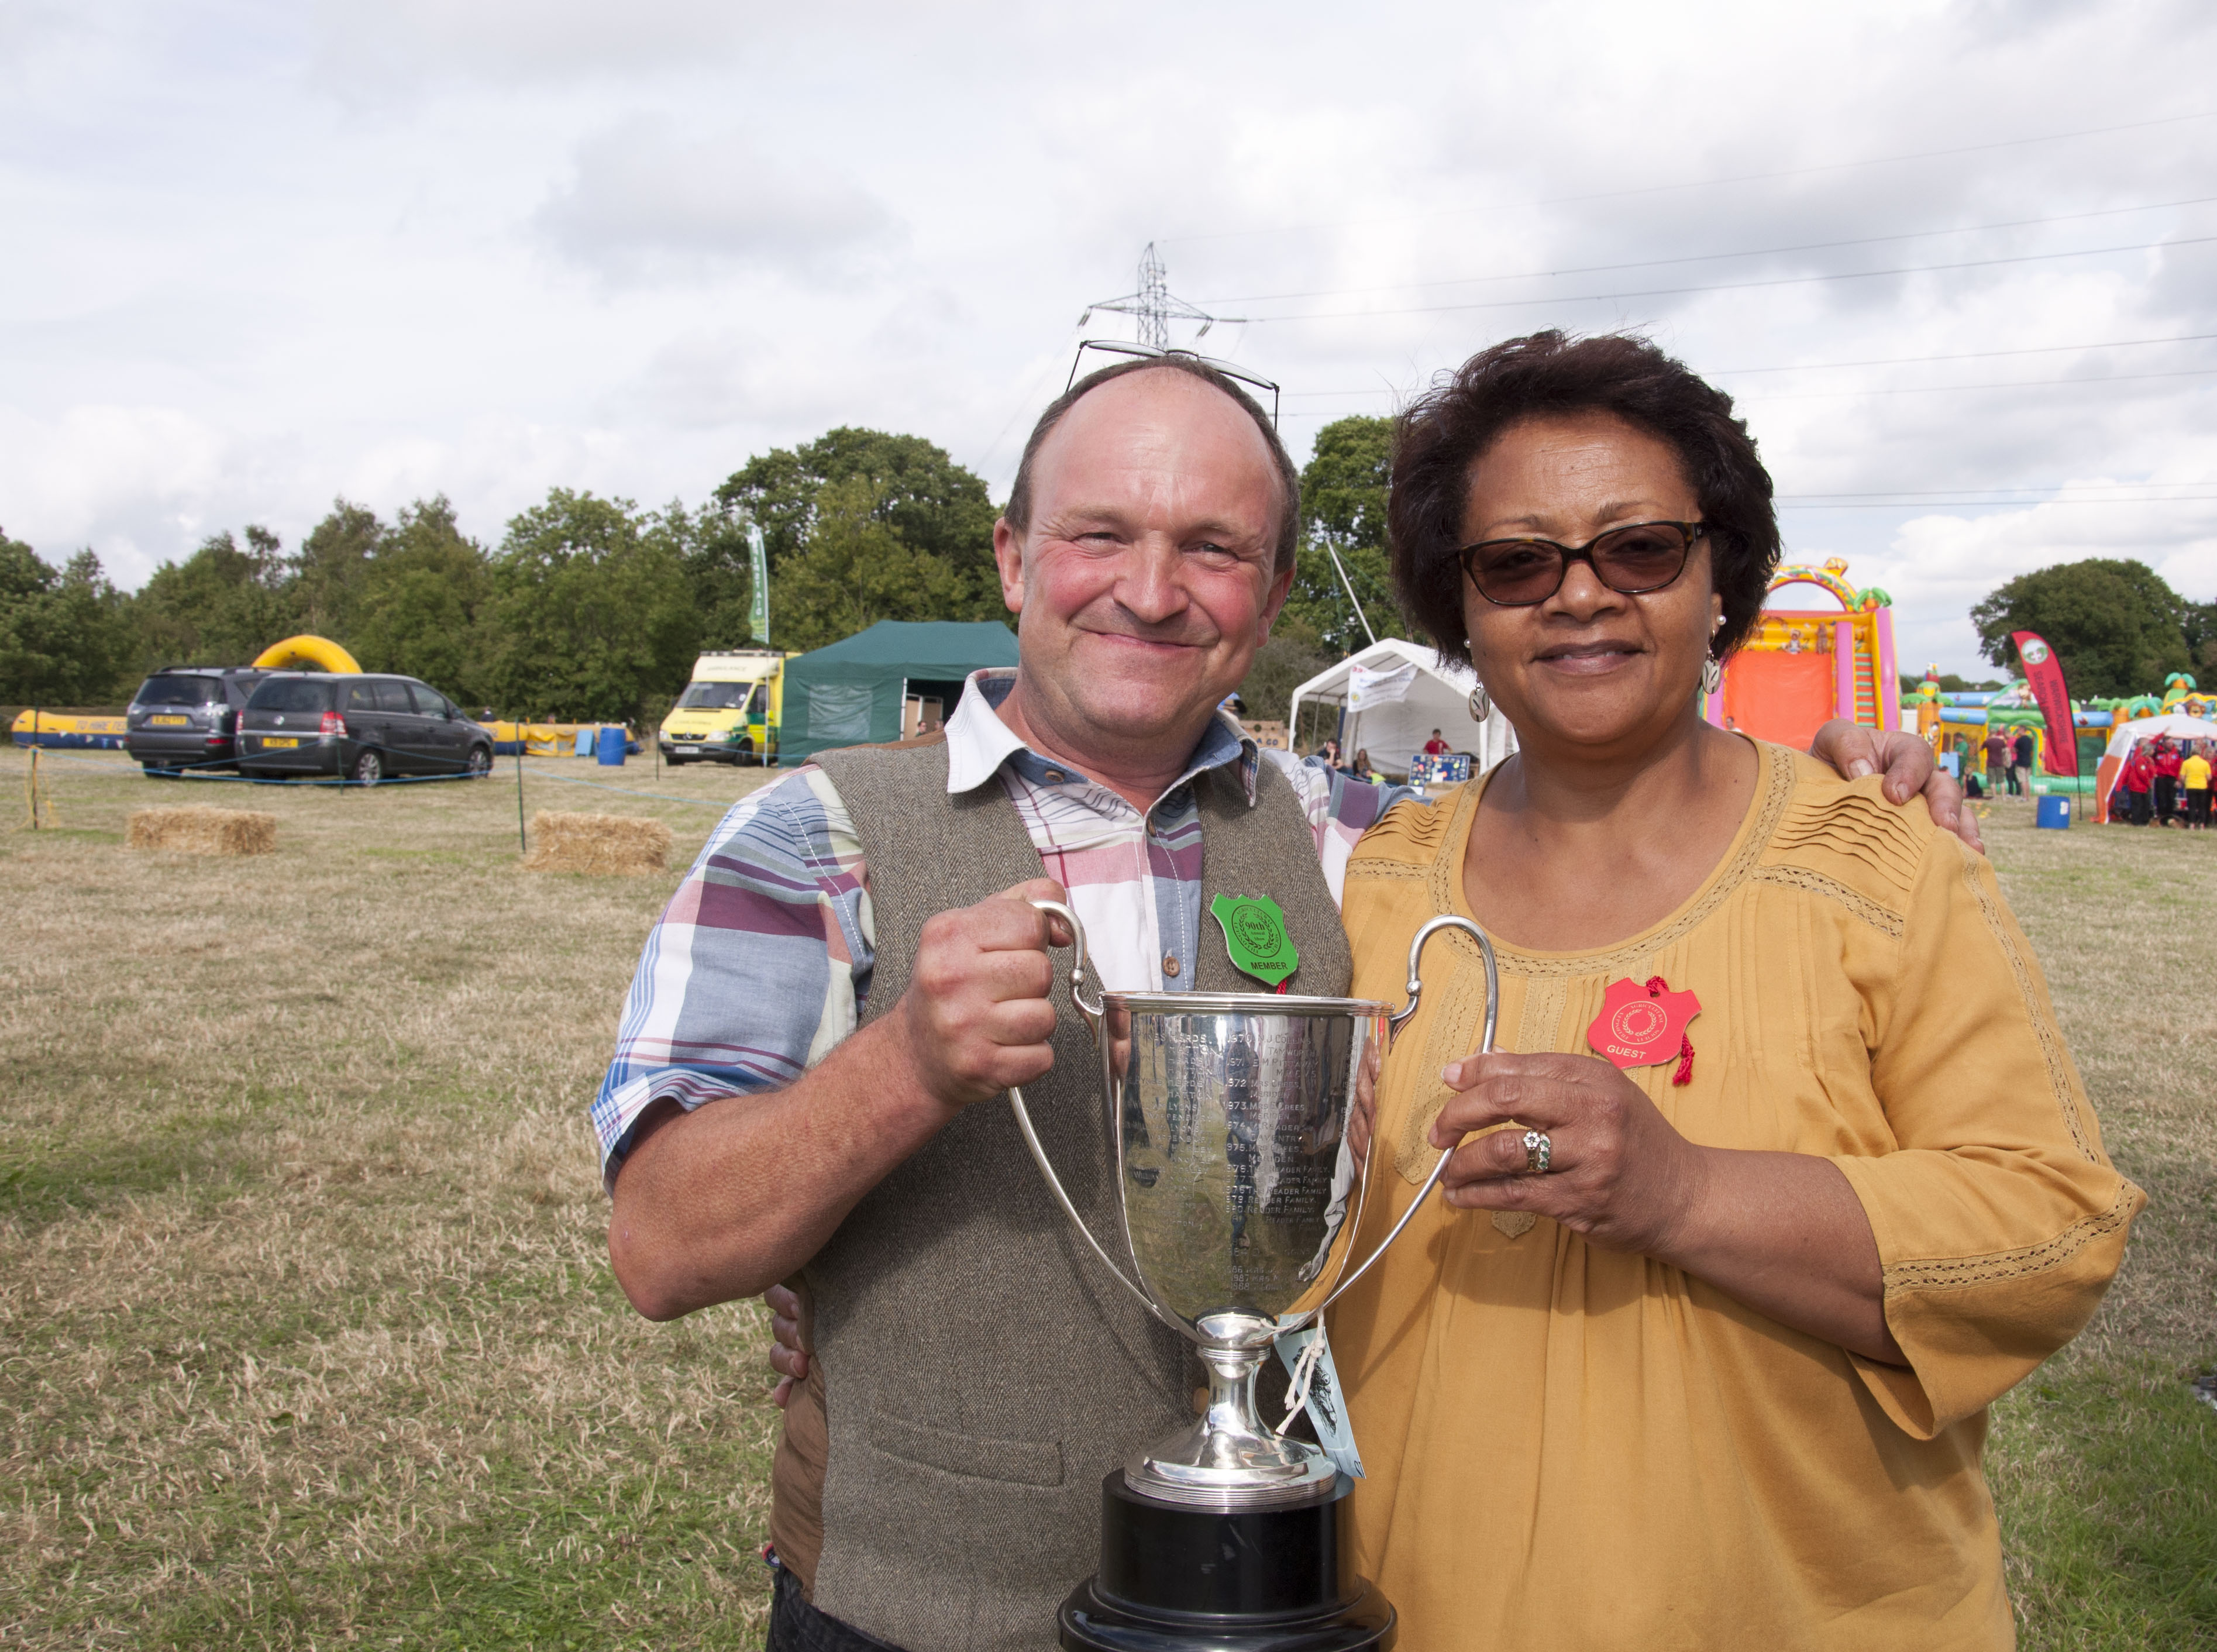 rupert and Blanche cup